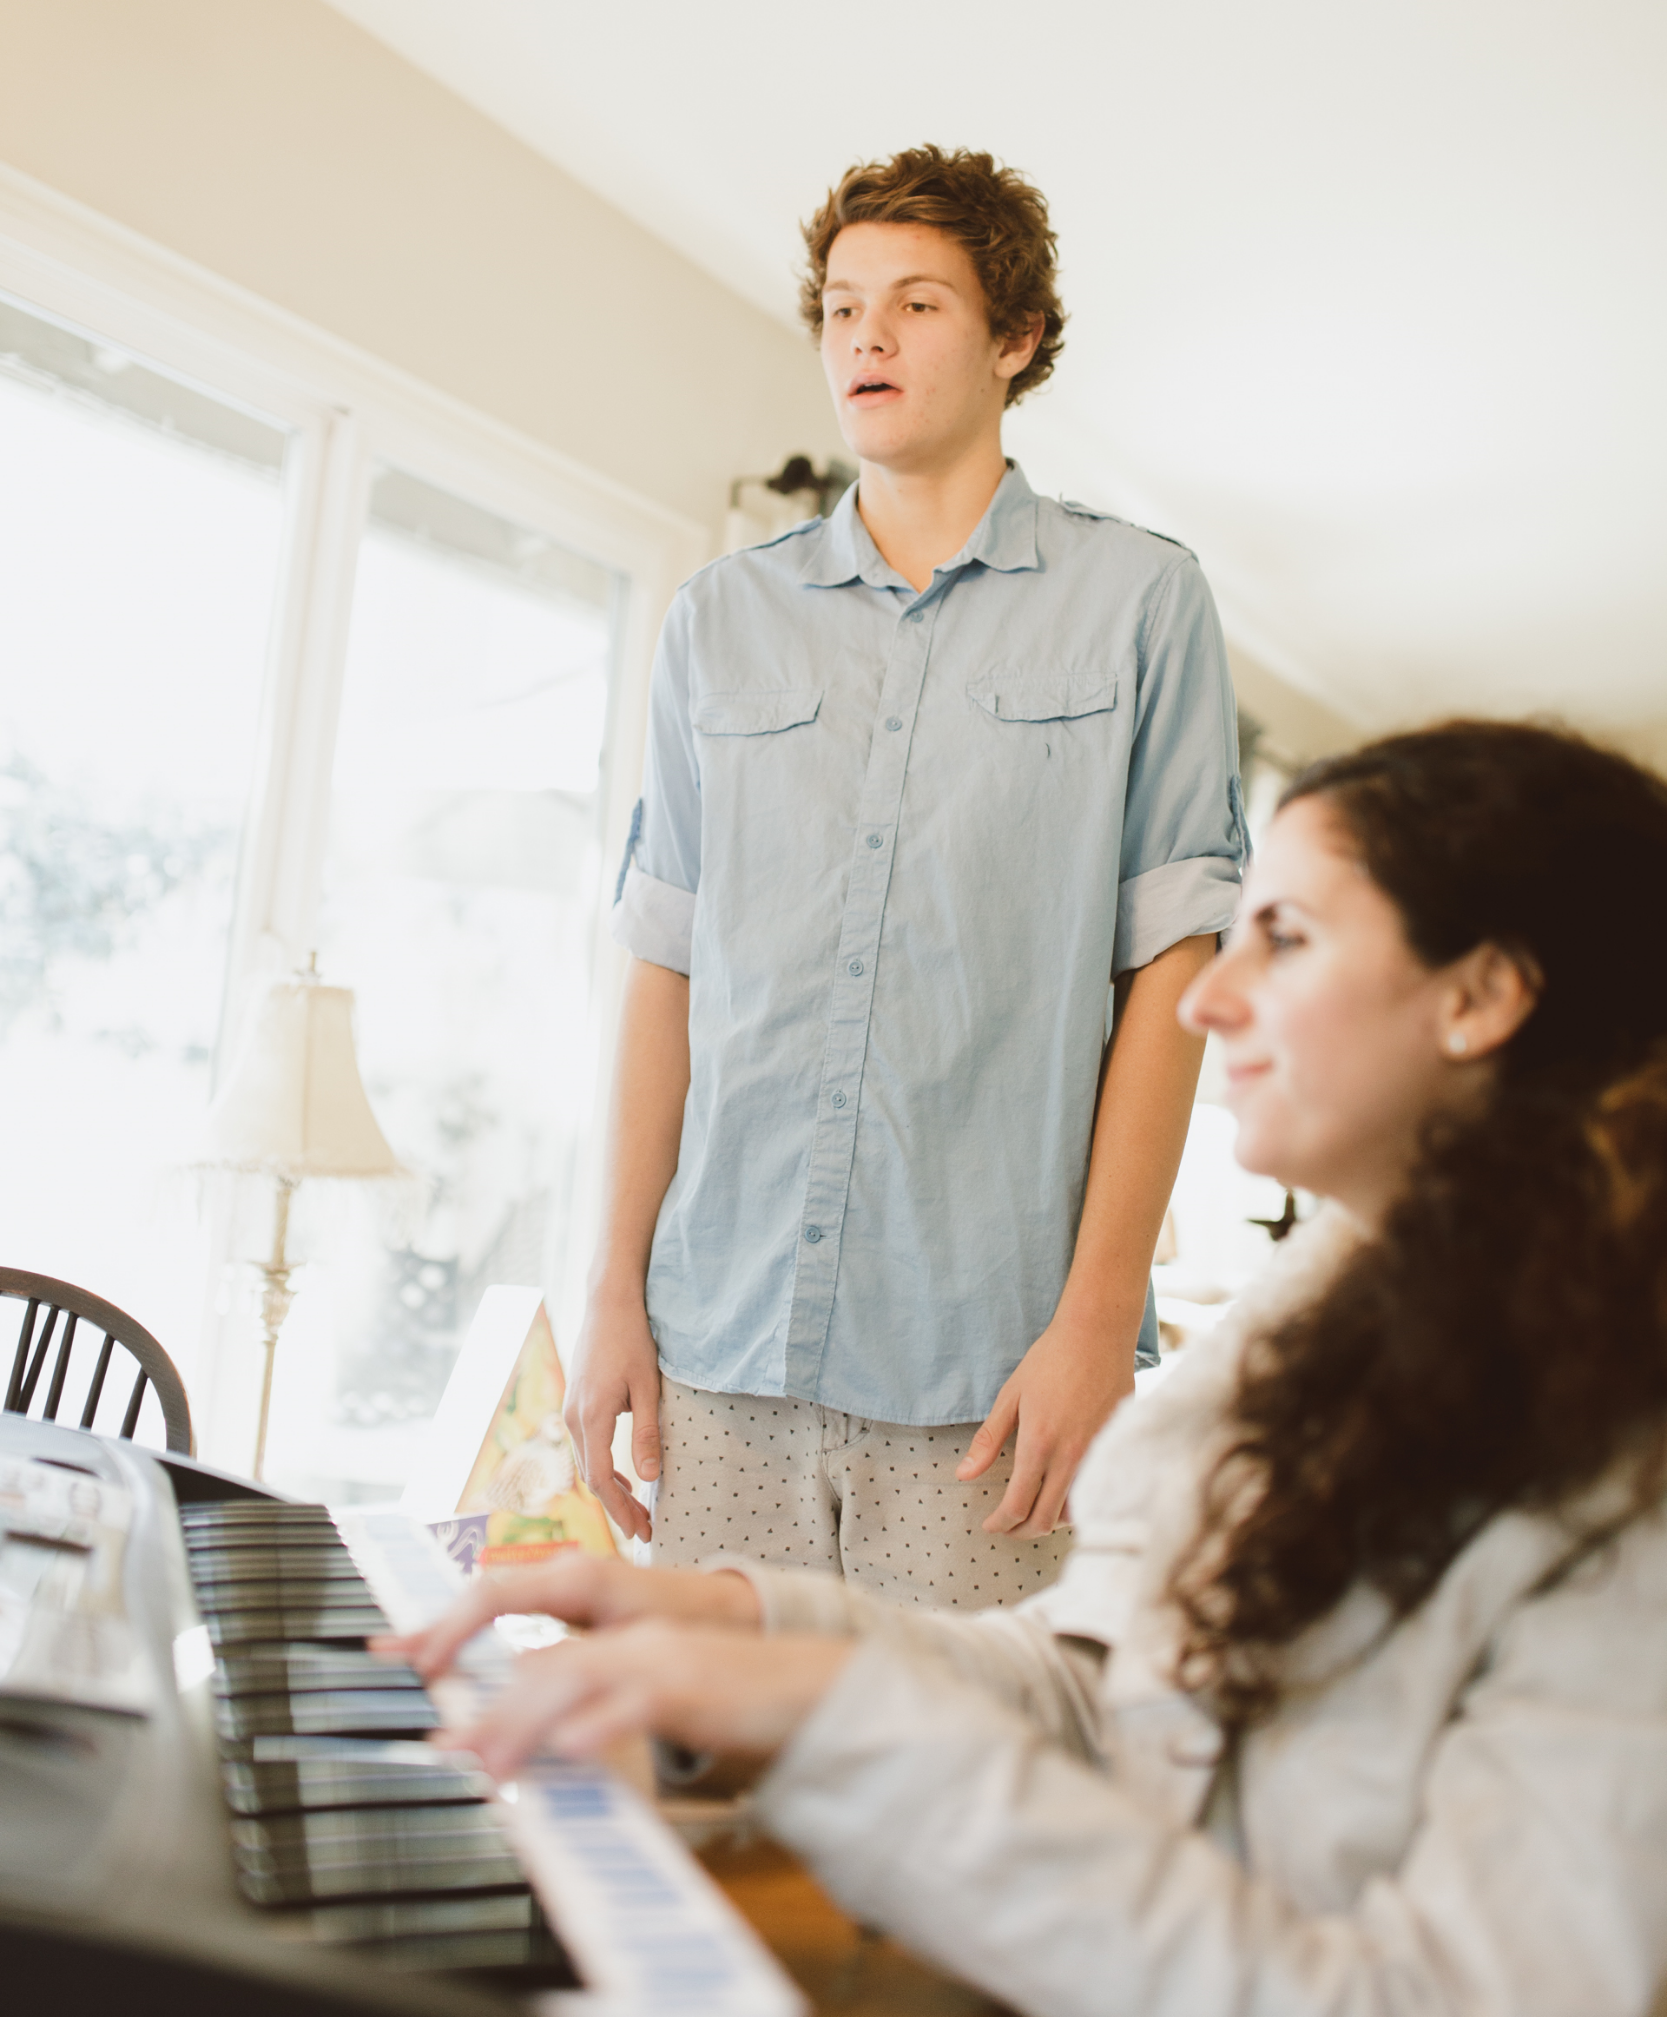 private voice lessons FOR KIDS, SINGING LESSONS,OC, orange county,